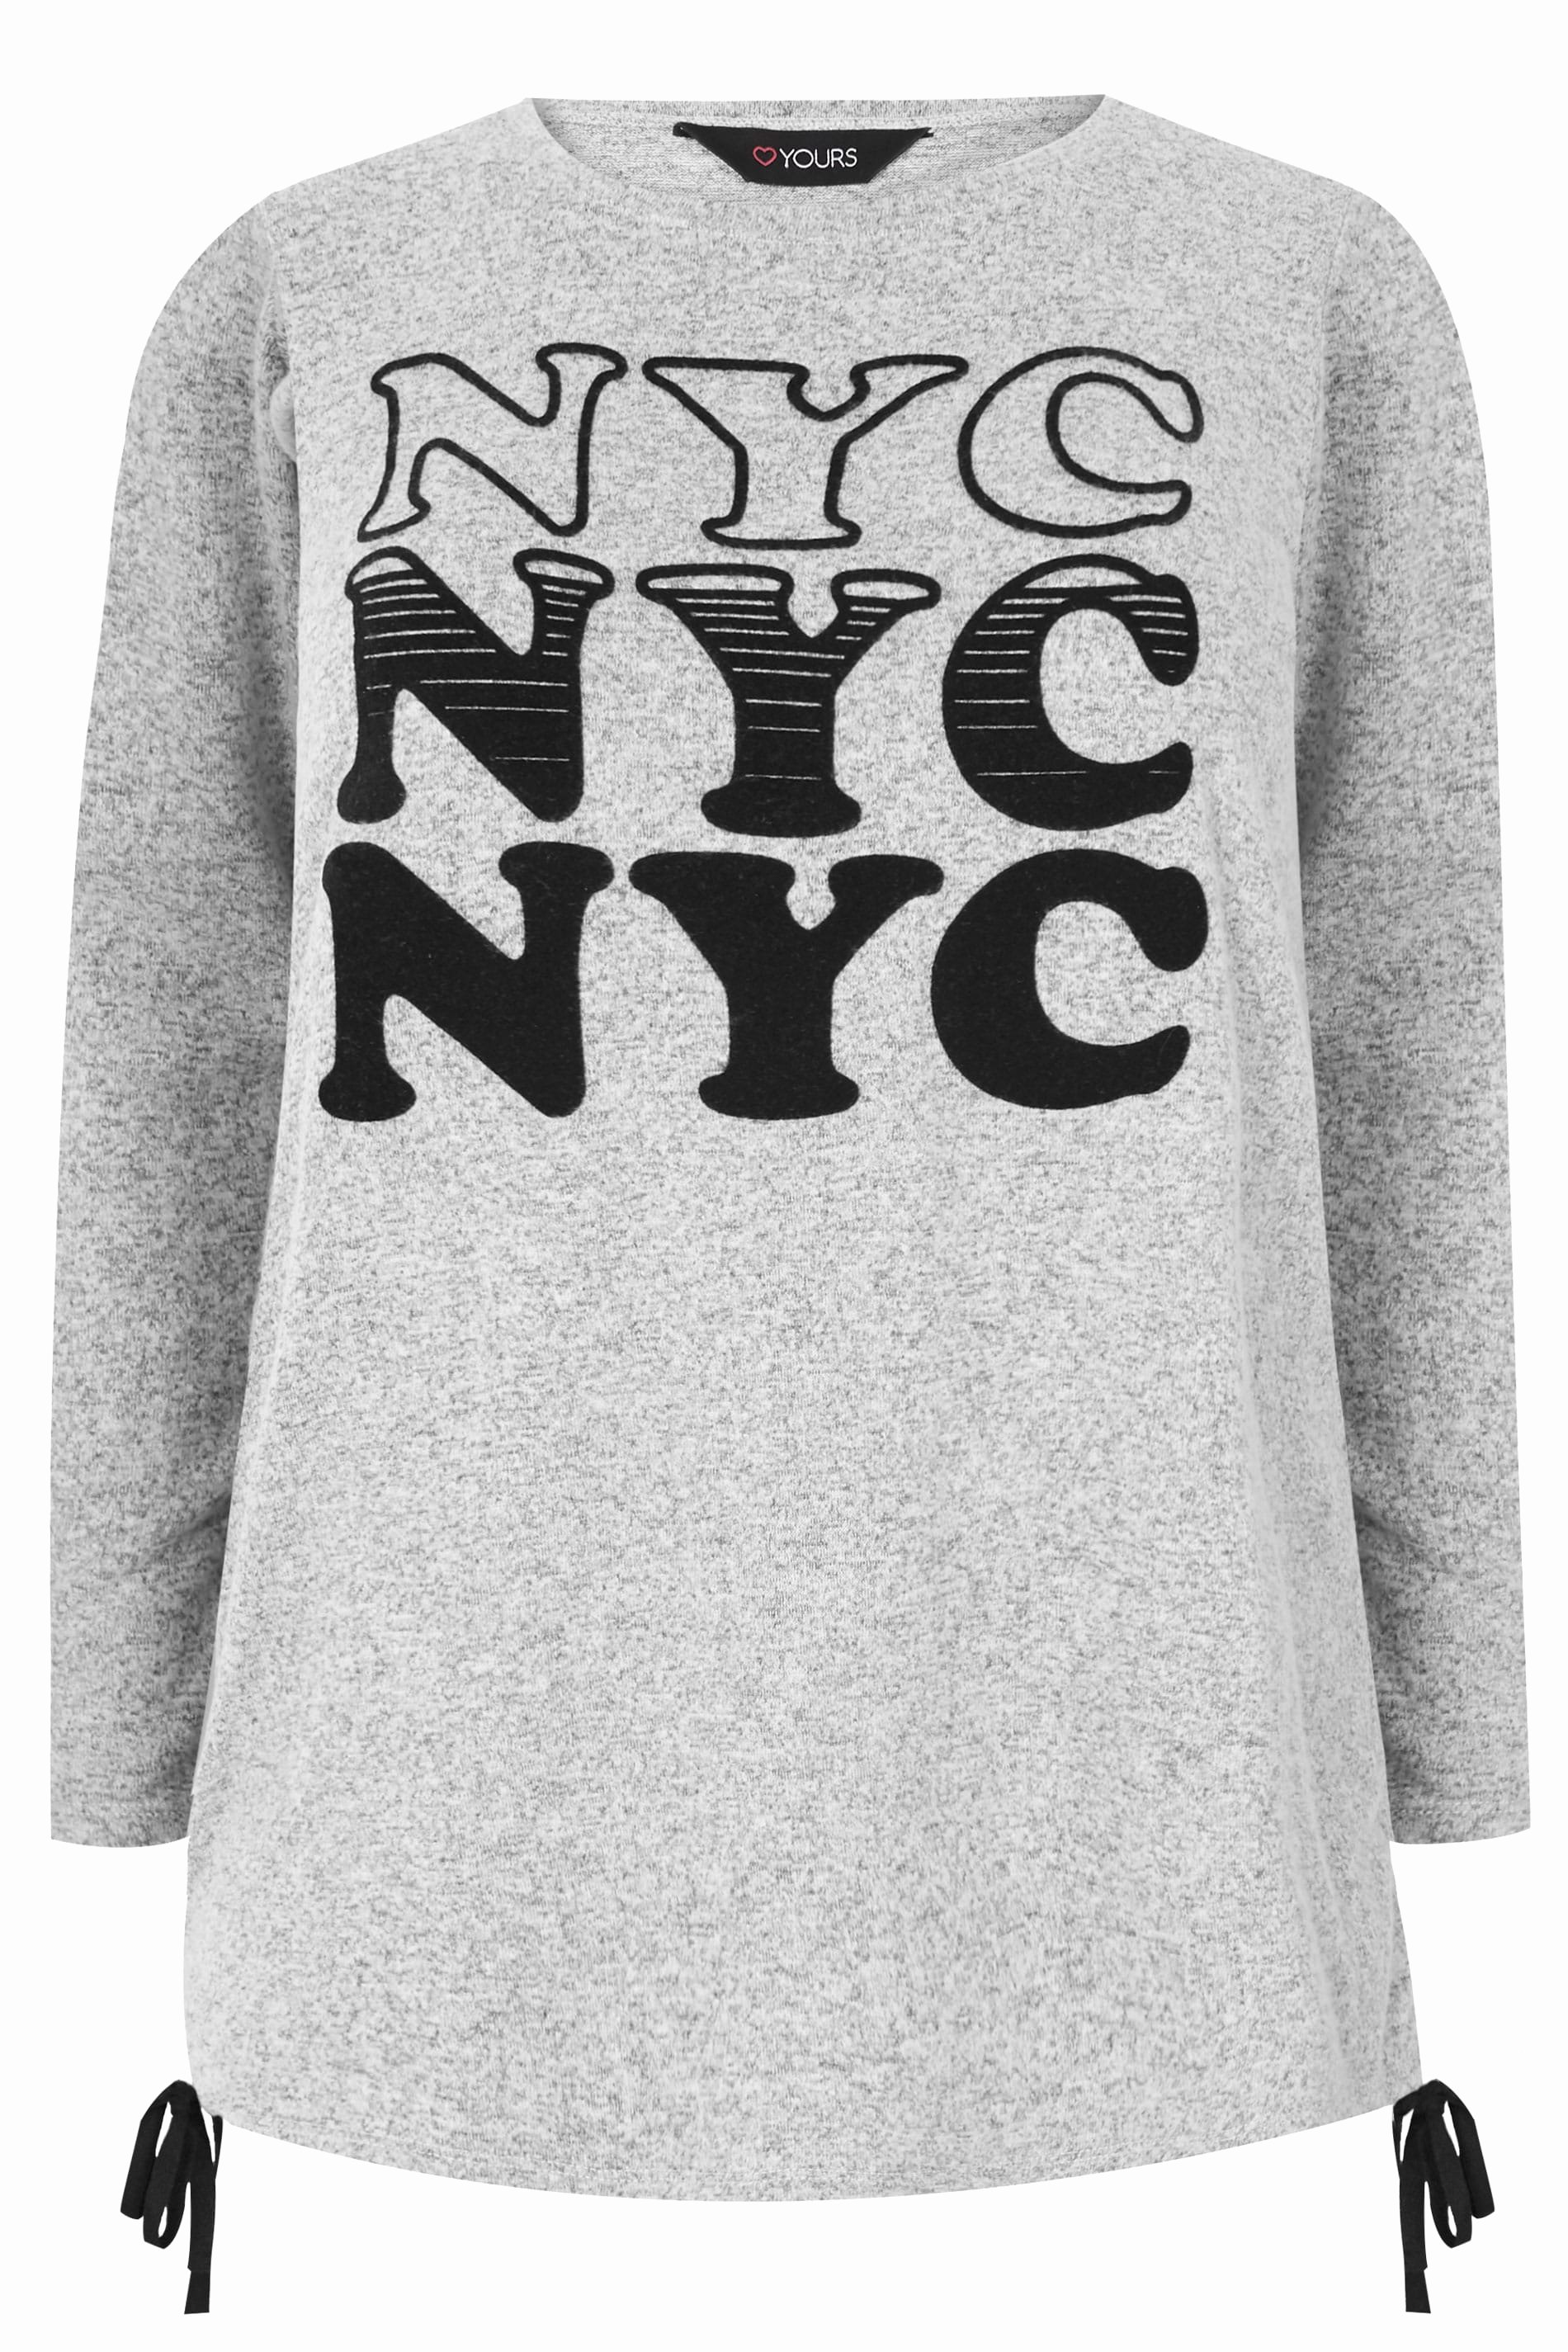 30 Day Review Template Inspirational Grey Nyc Felt Knitted top Plus Size 16 to 36